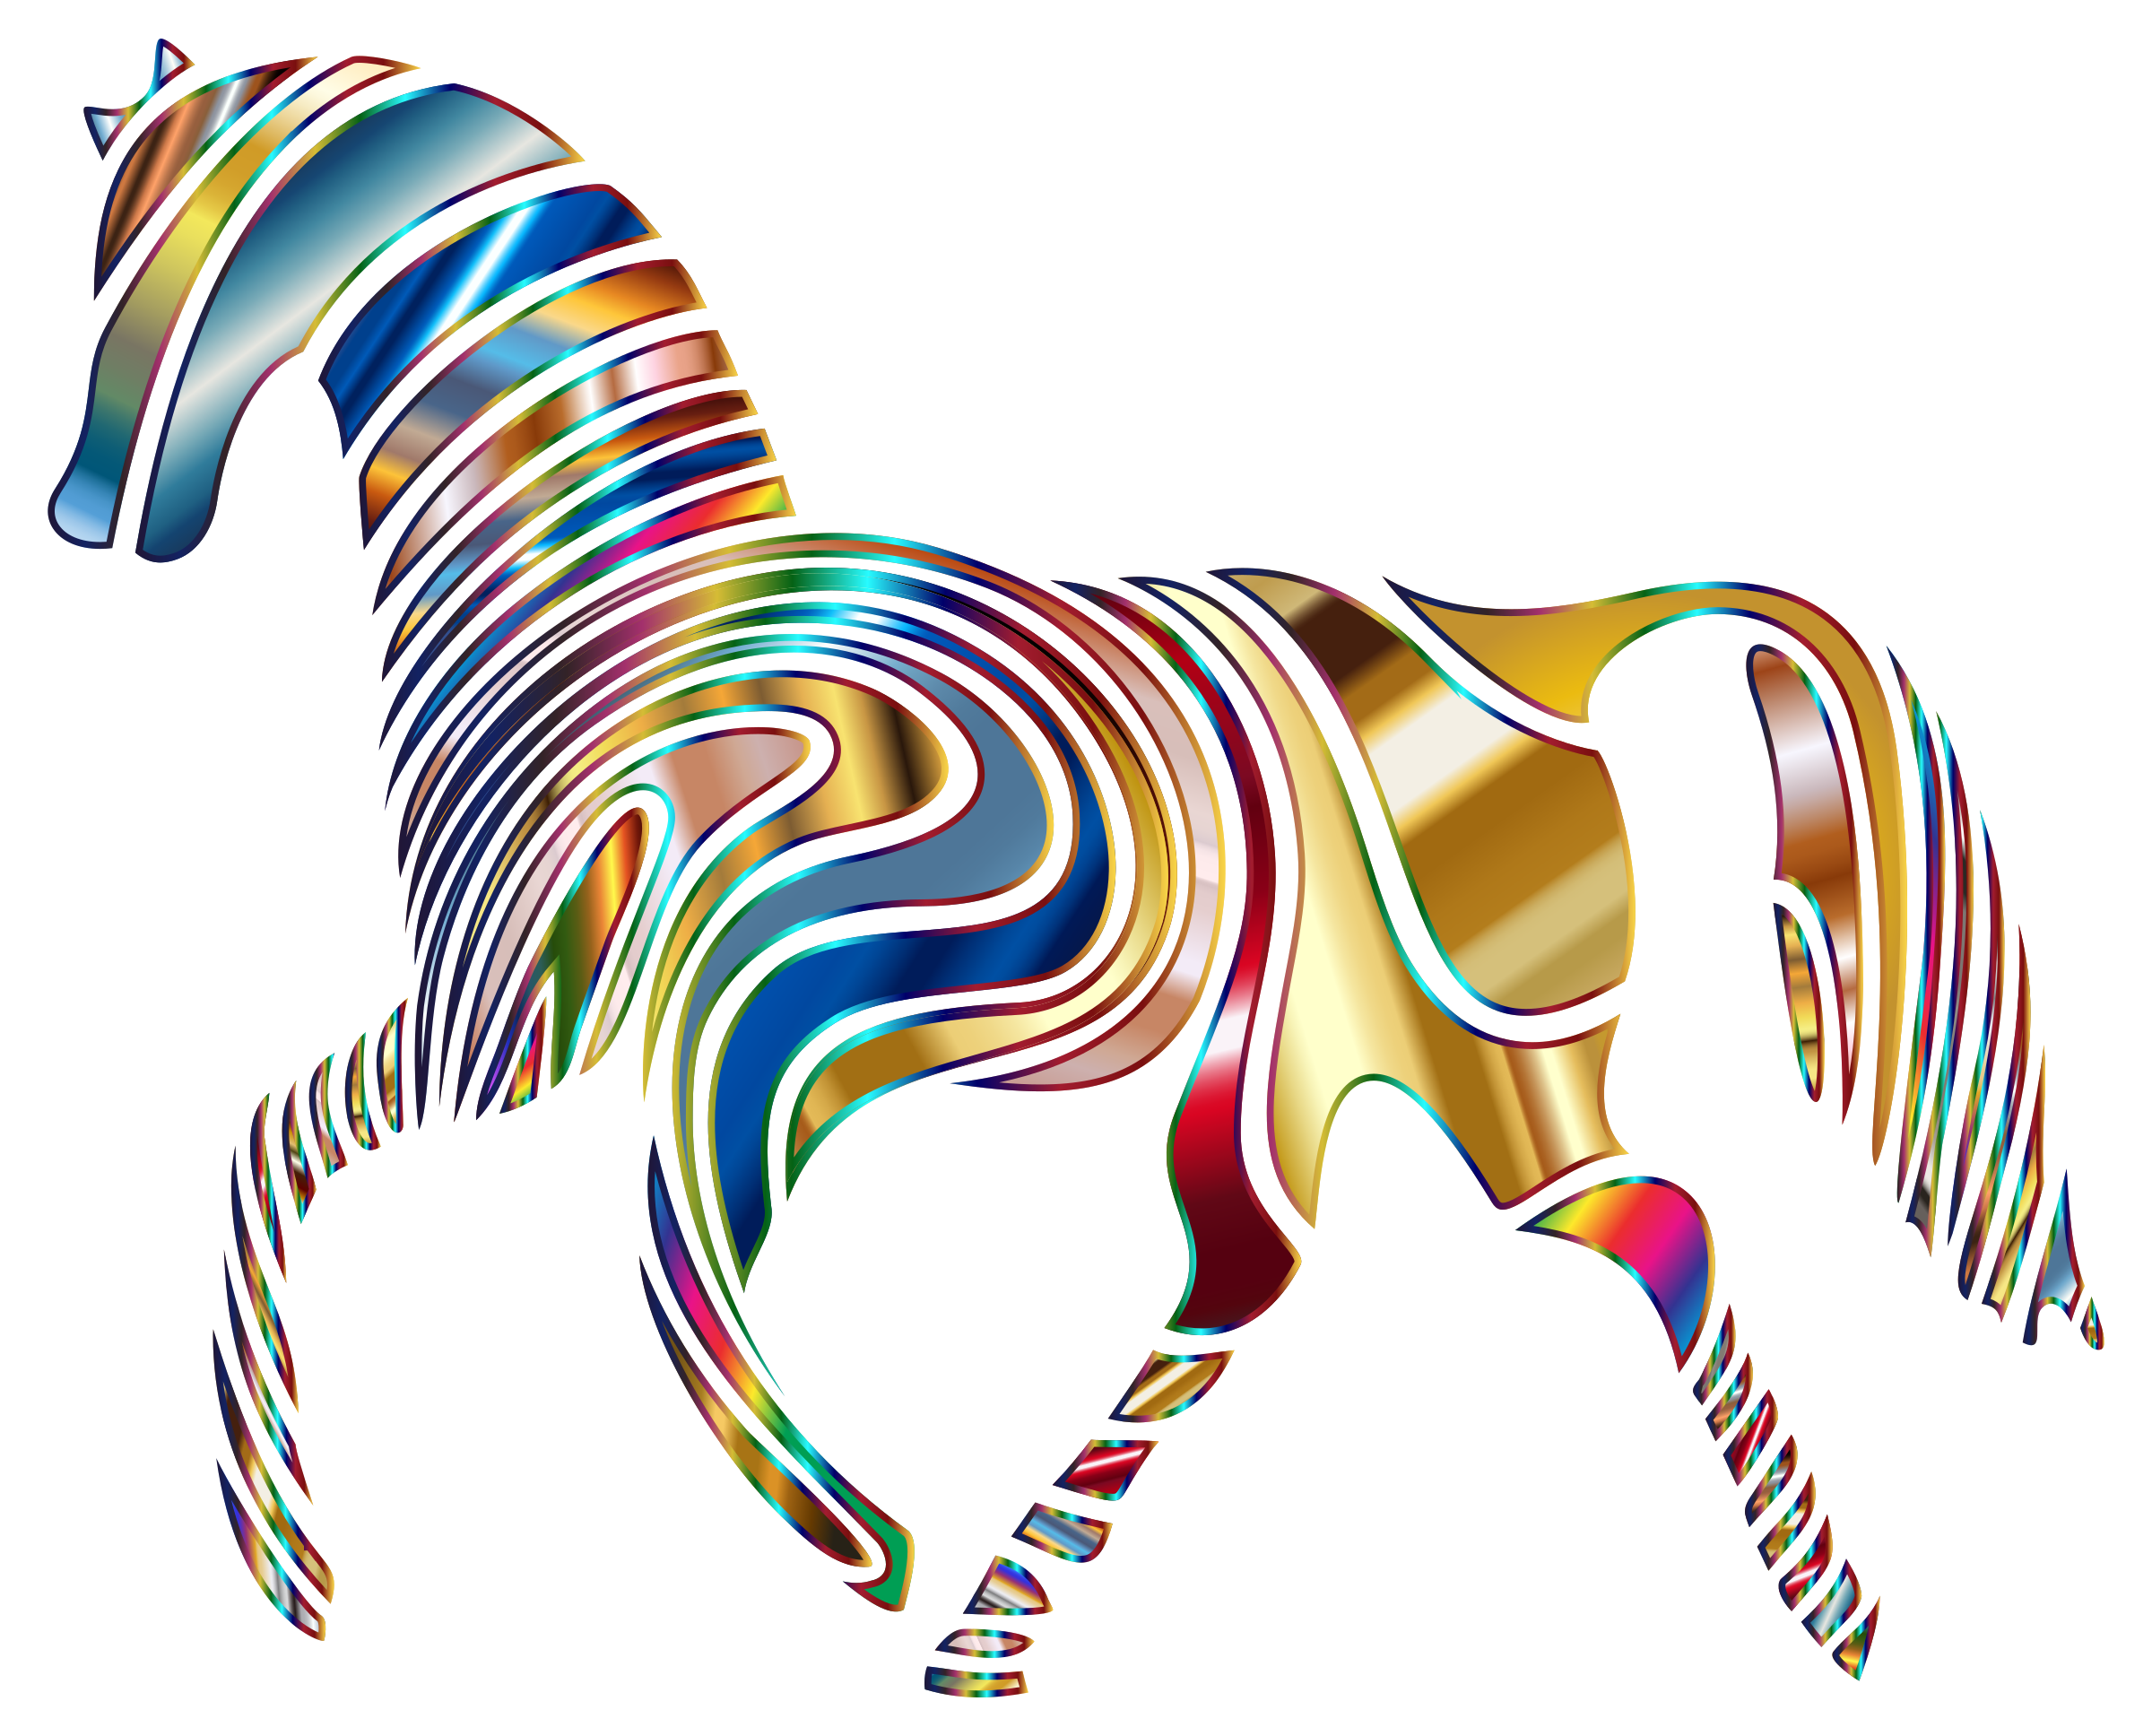 Psychedelic Horse 2 by GDJ